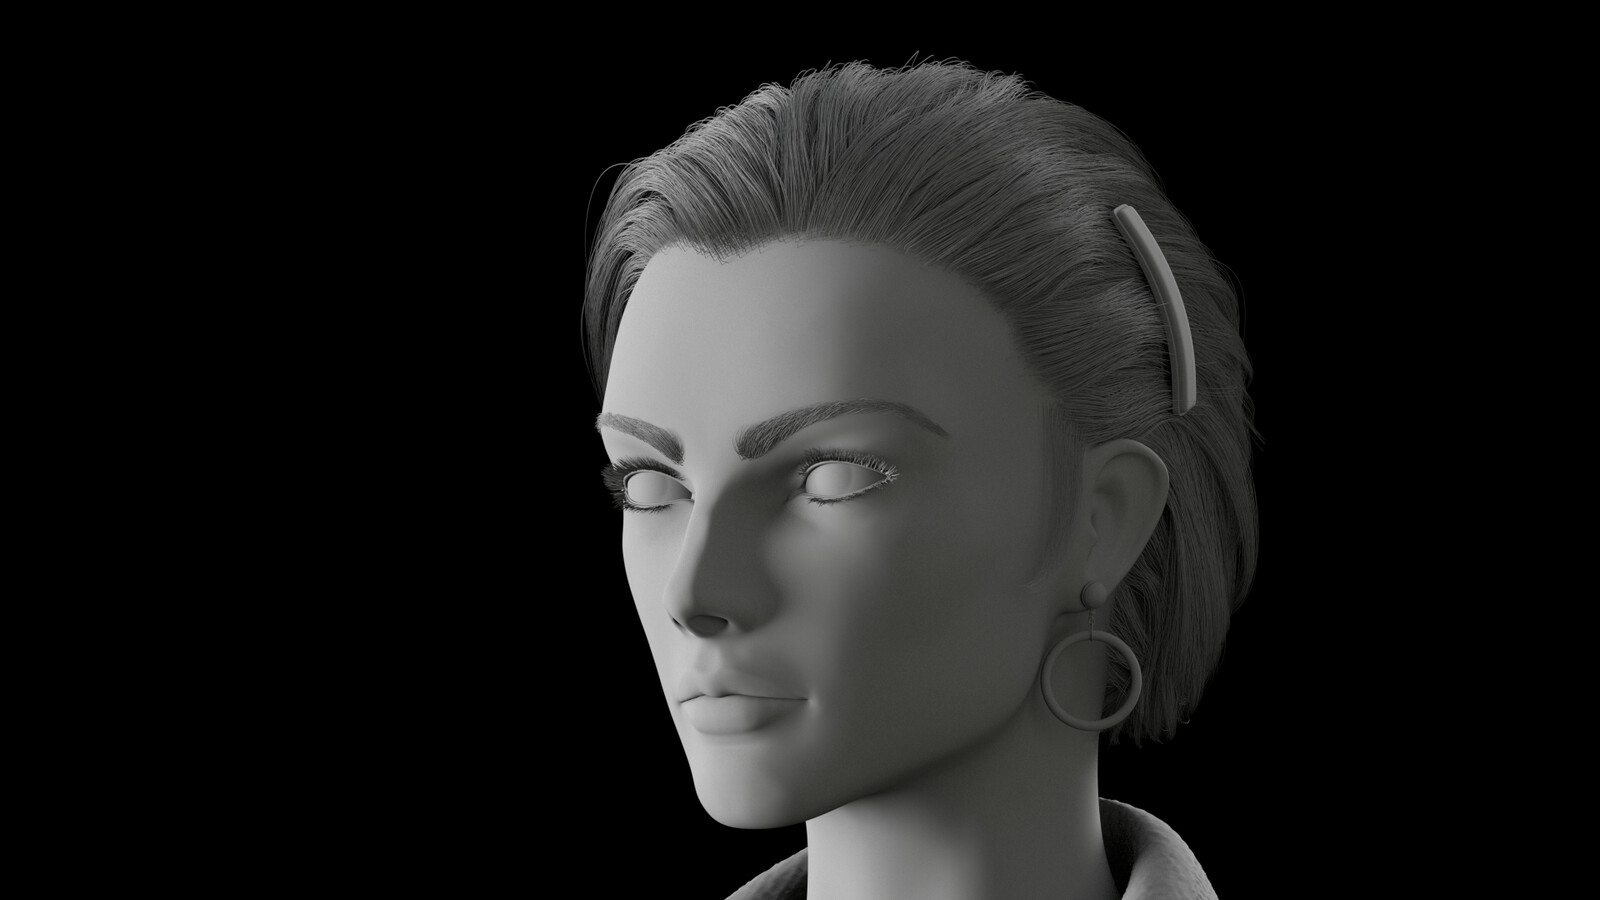 Grayscale render